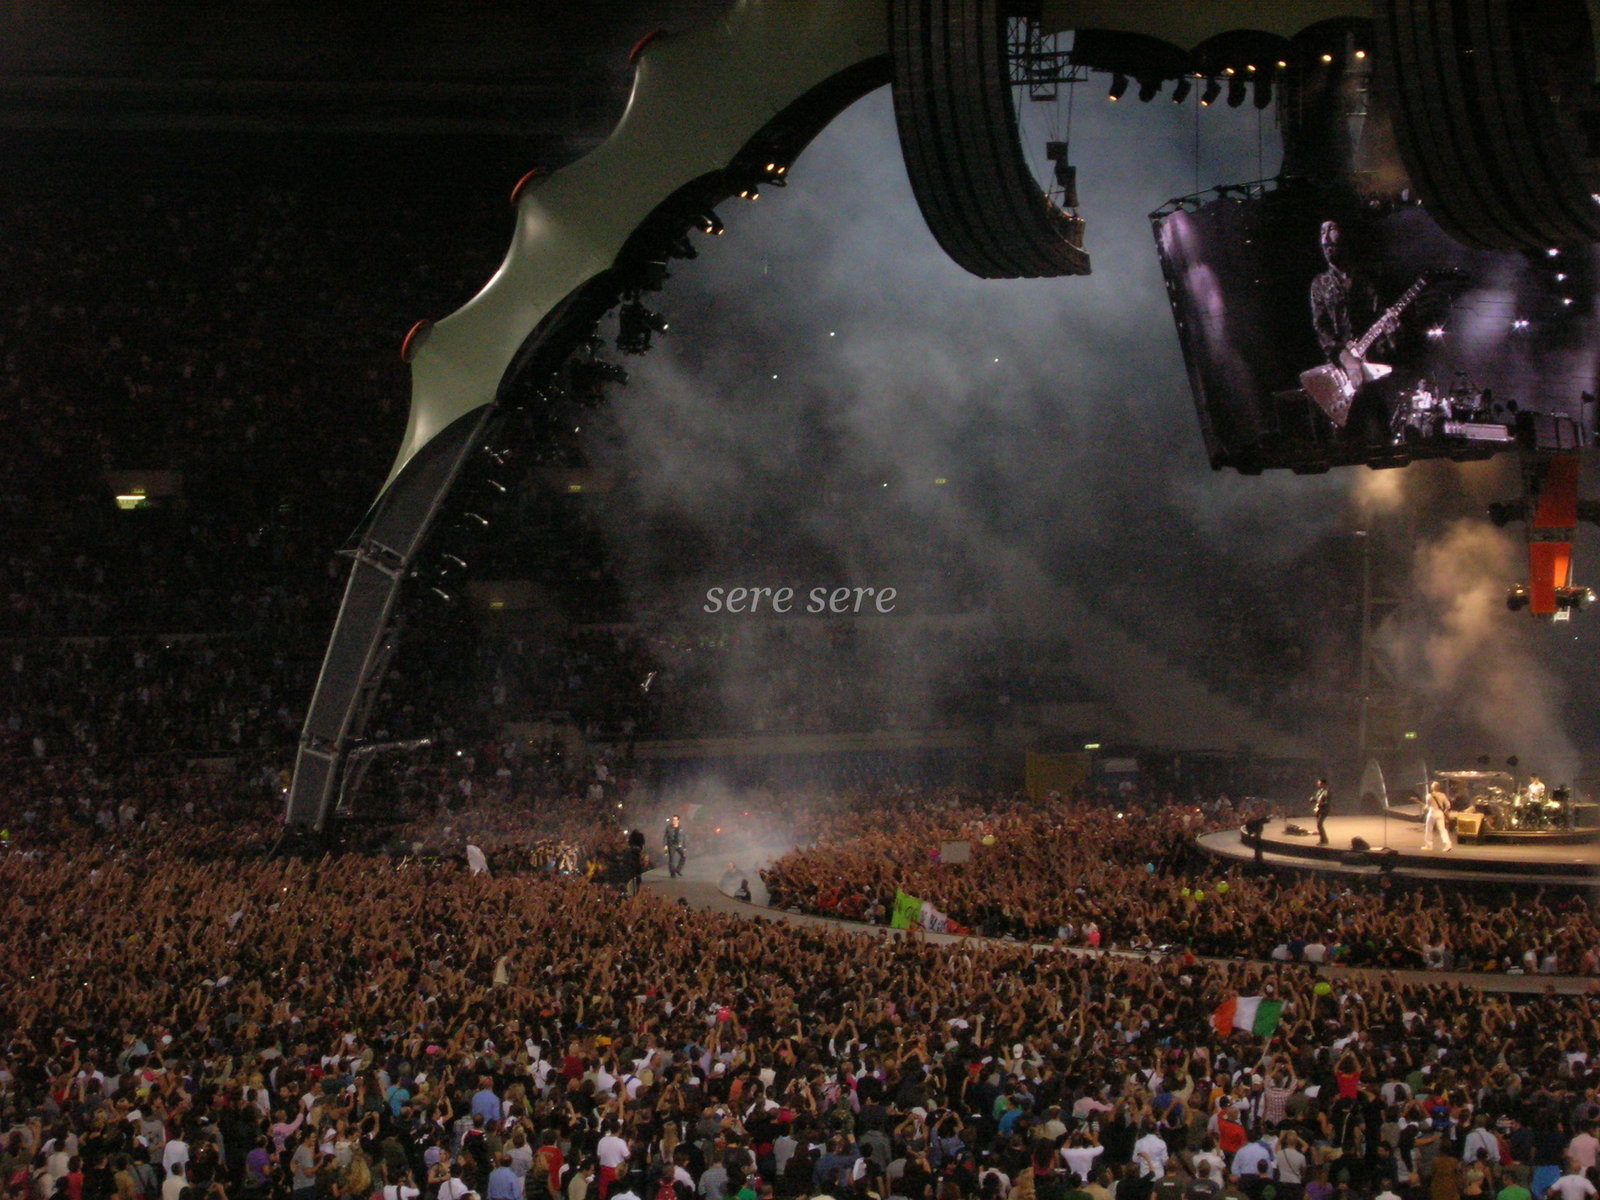 U2 live on stage in Rome 360 Tour